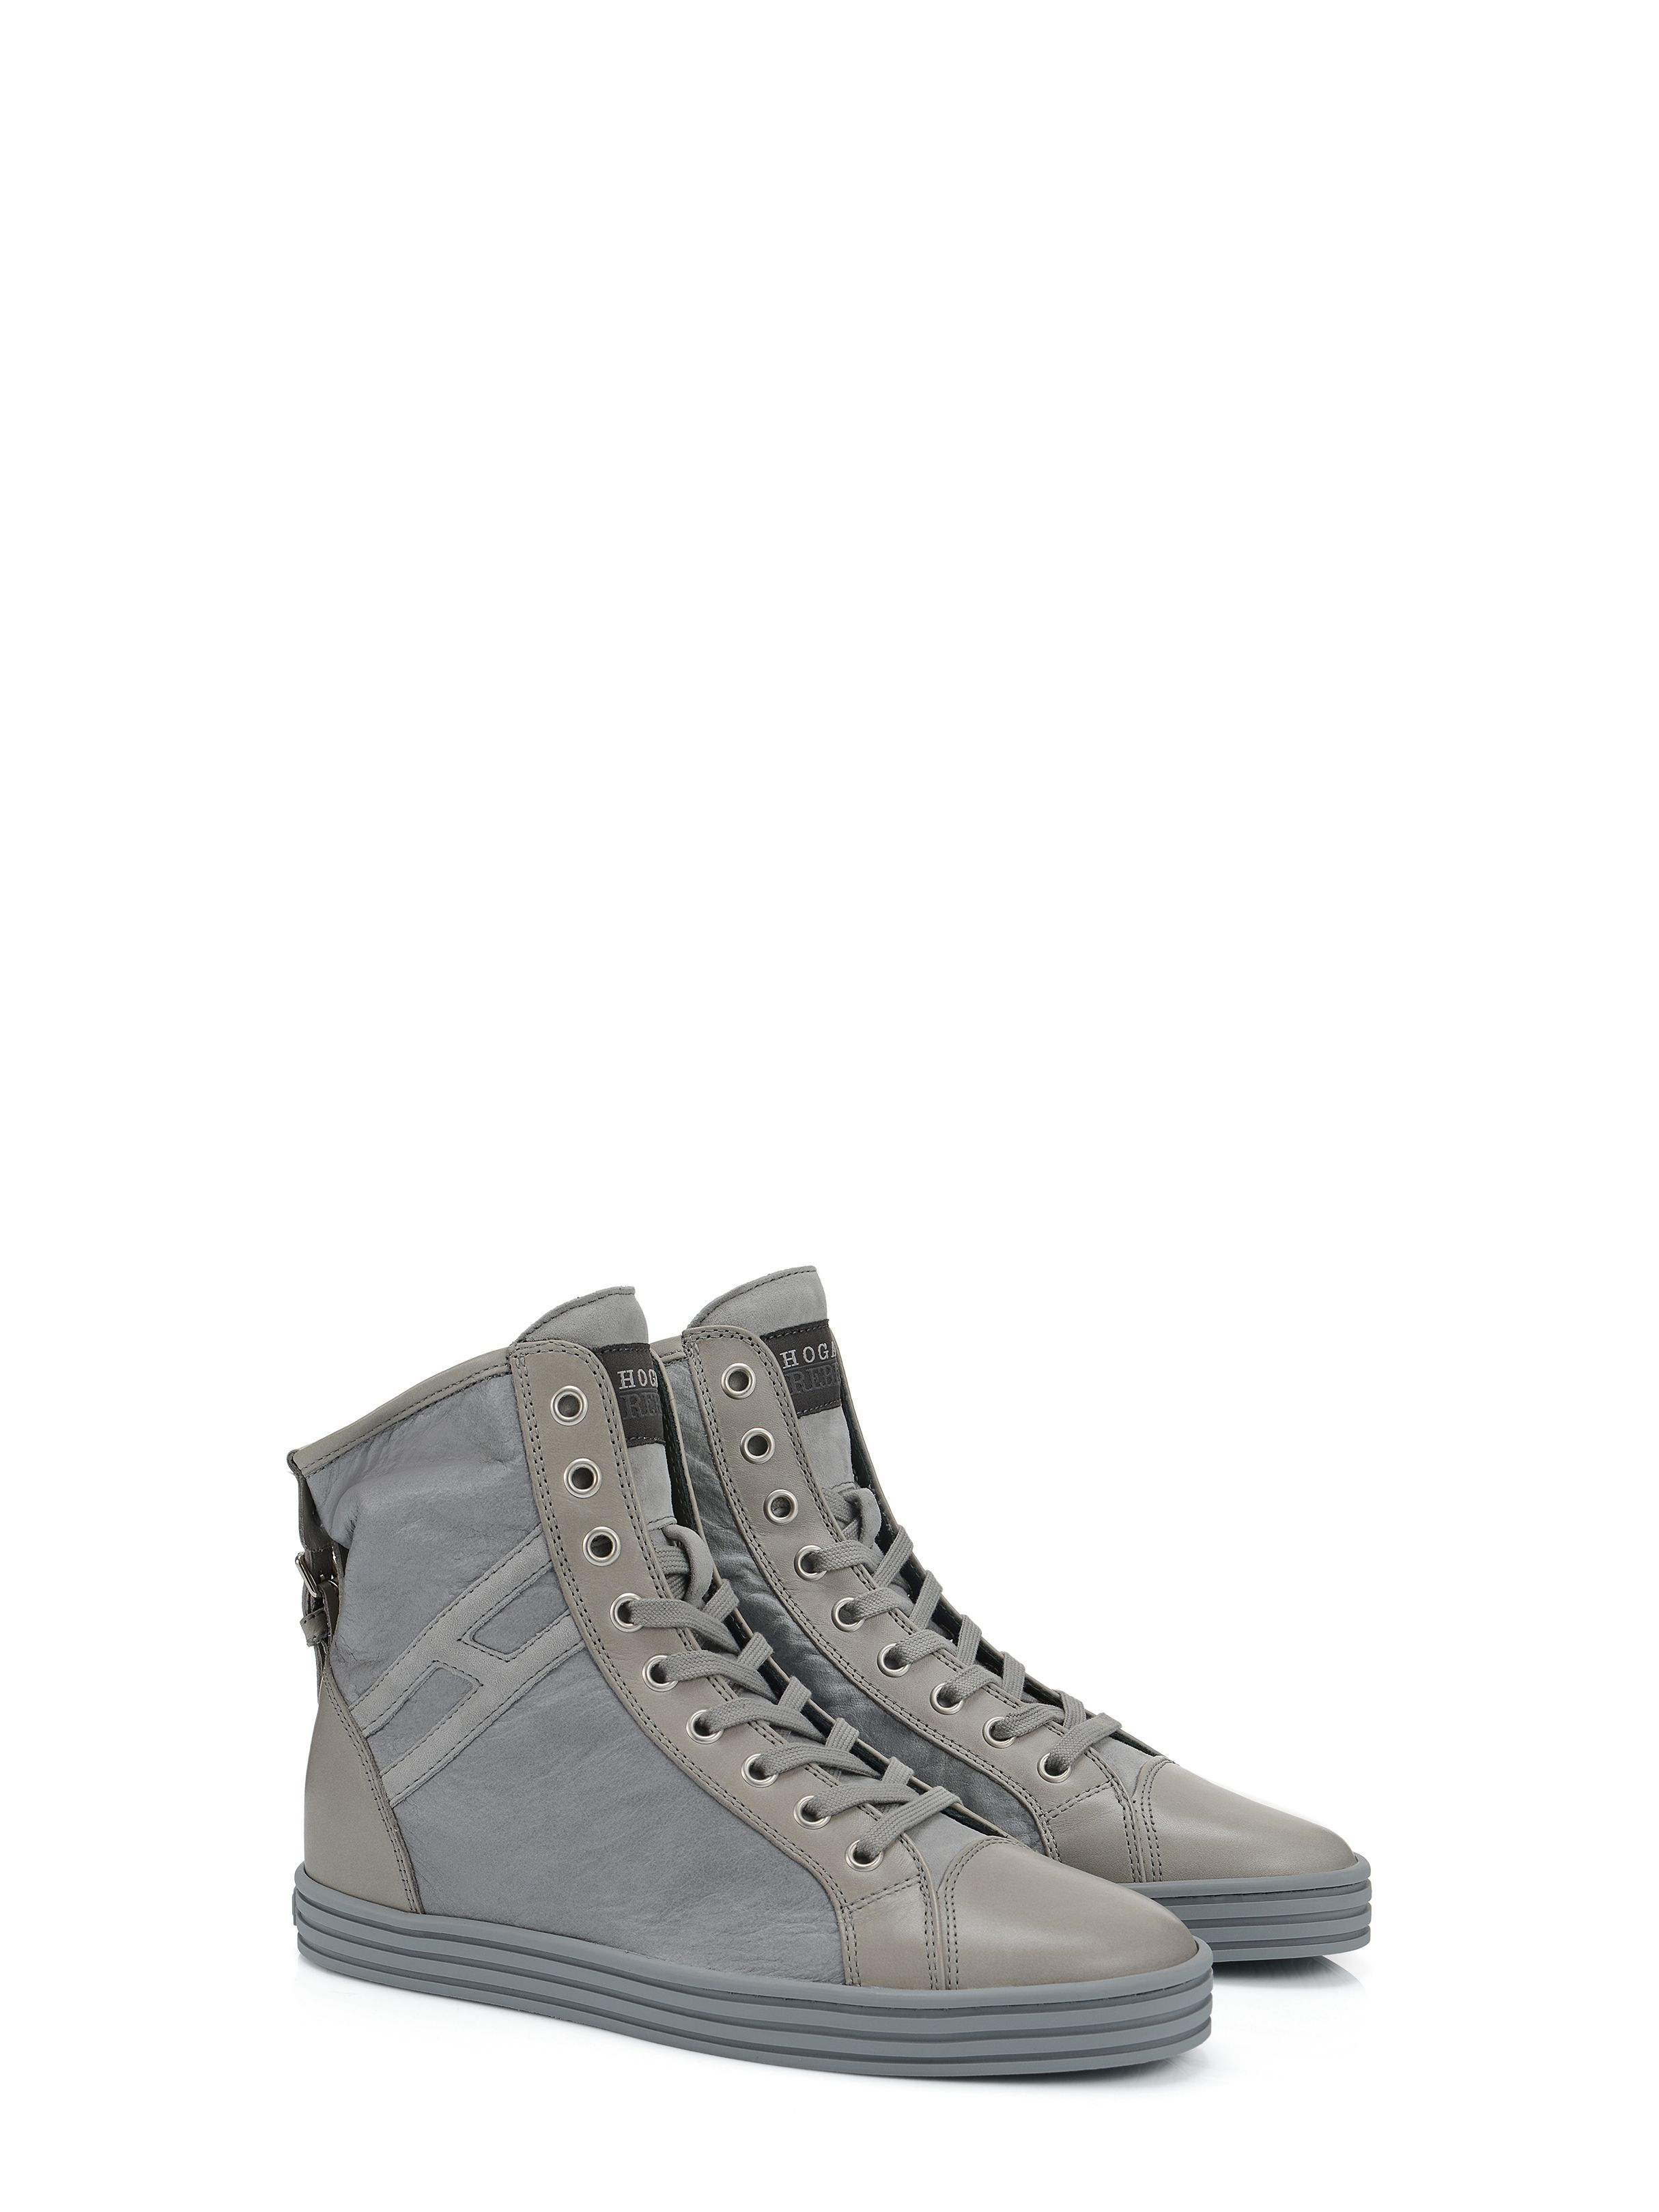 3b82ca949d4 Hogan Rebel - R182 - HXW1820D6614RGB606 - Leather high-top sneakers with suede  Hogan monogram on the side